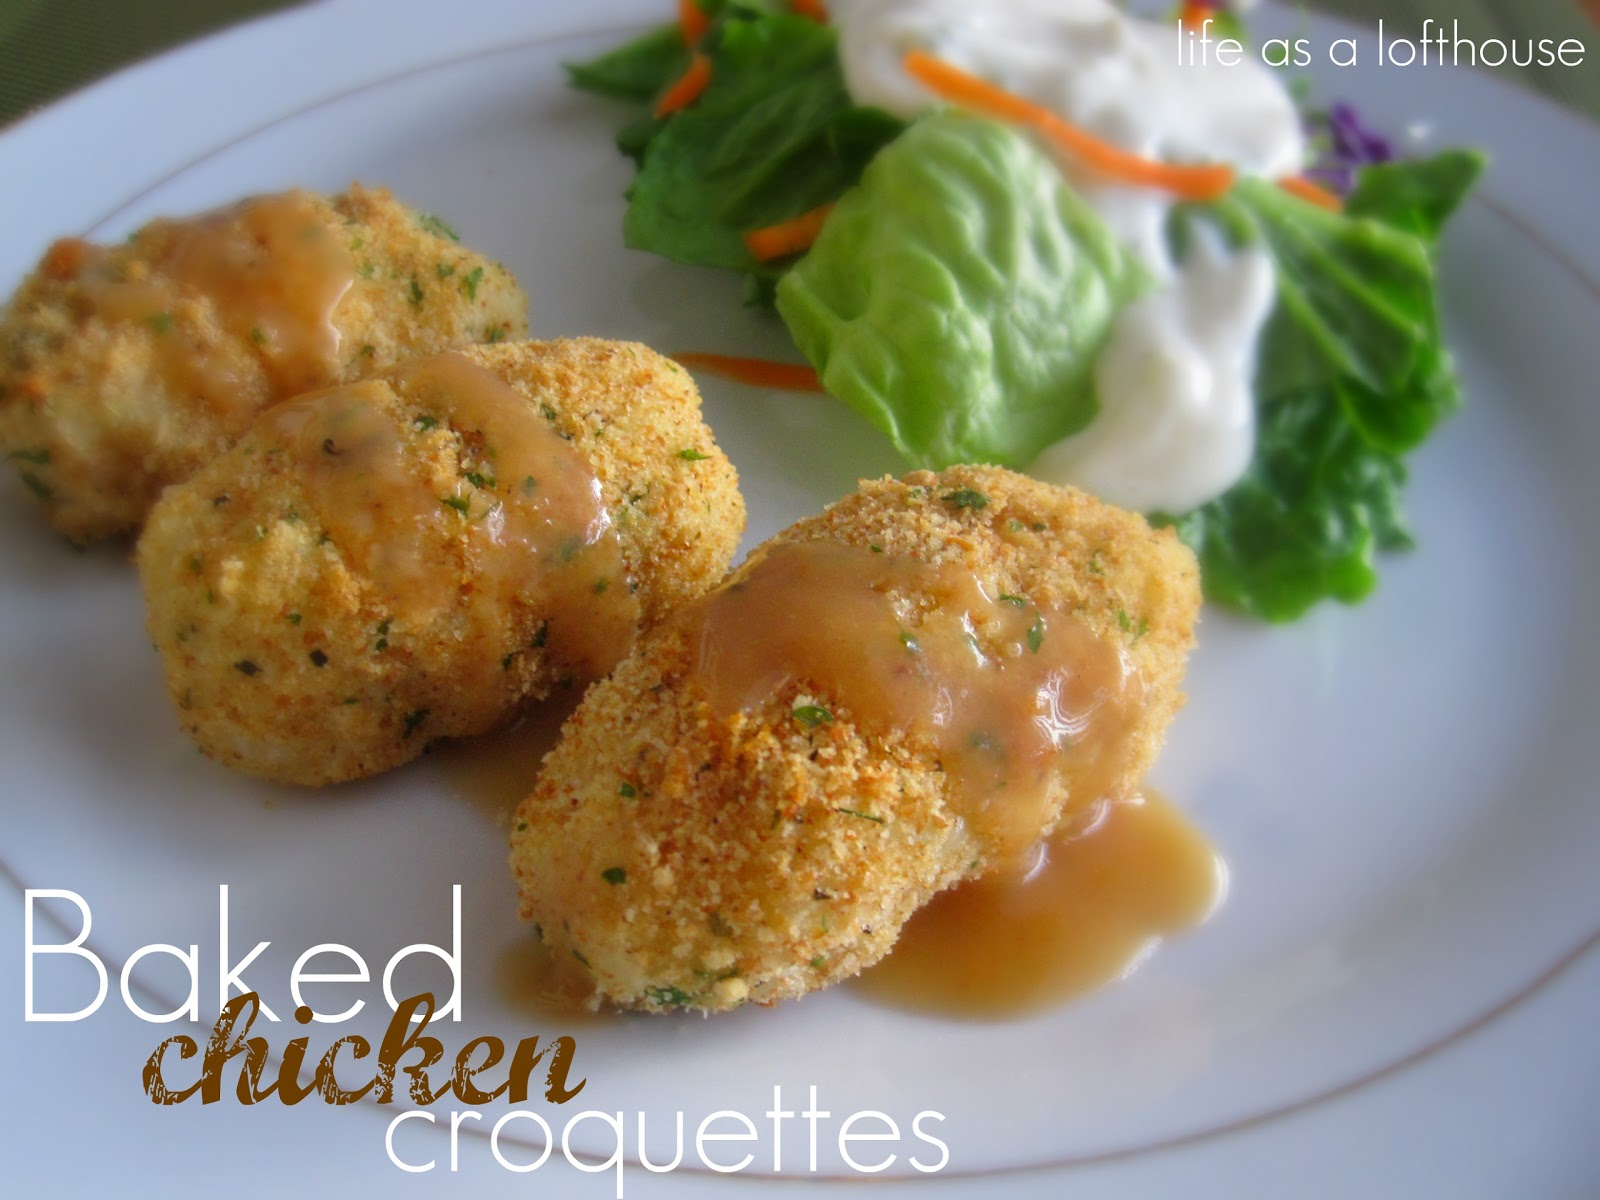 Baked Turkey Croquettes Recipes — Dishmaps